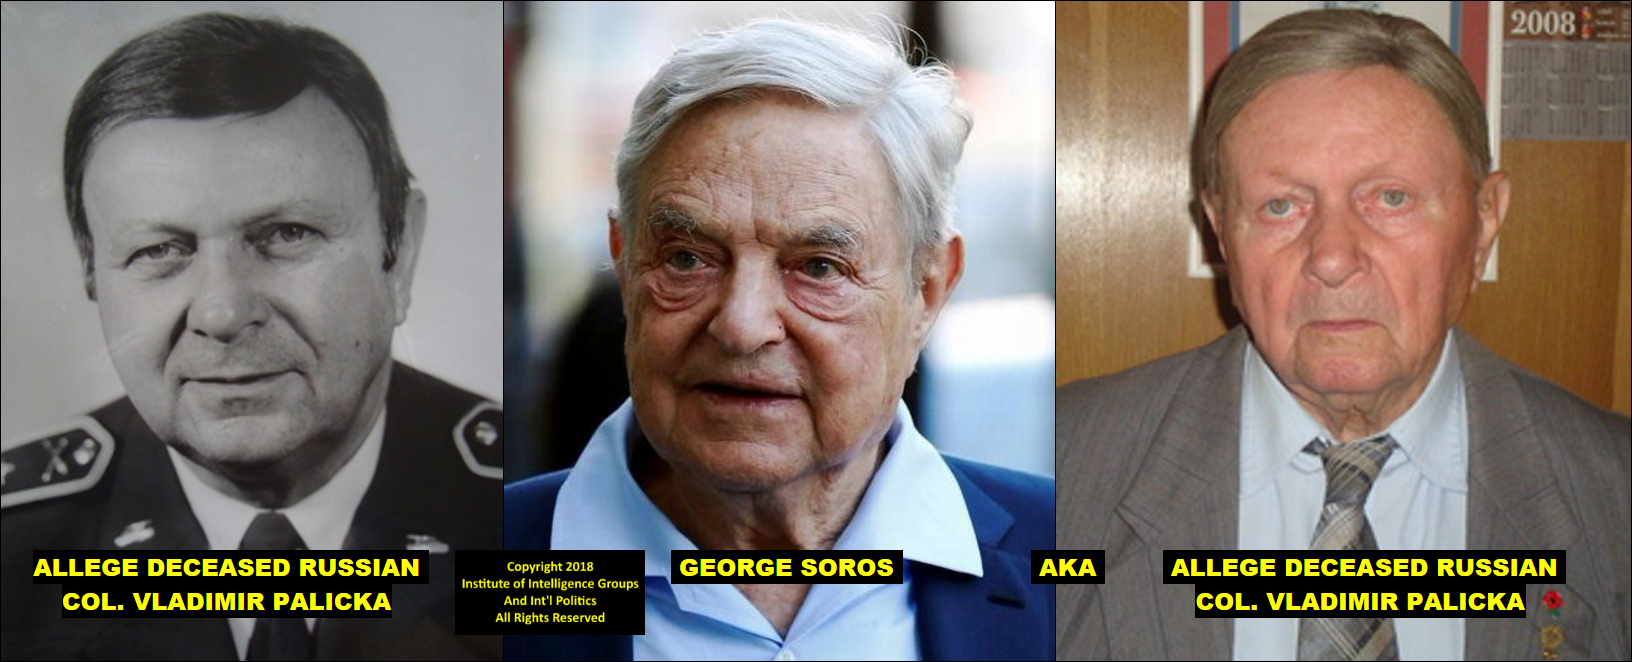 SOROS Comparison To Palicka